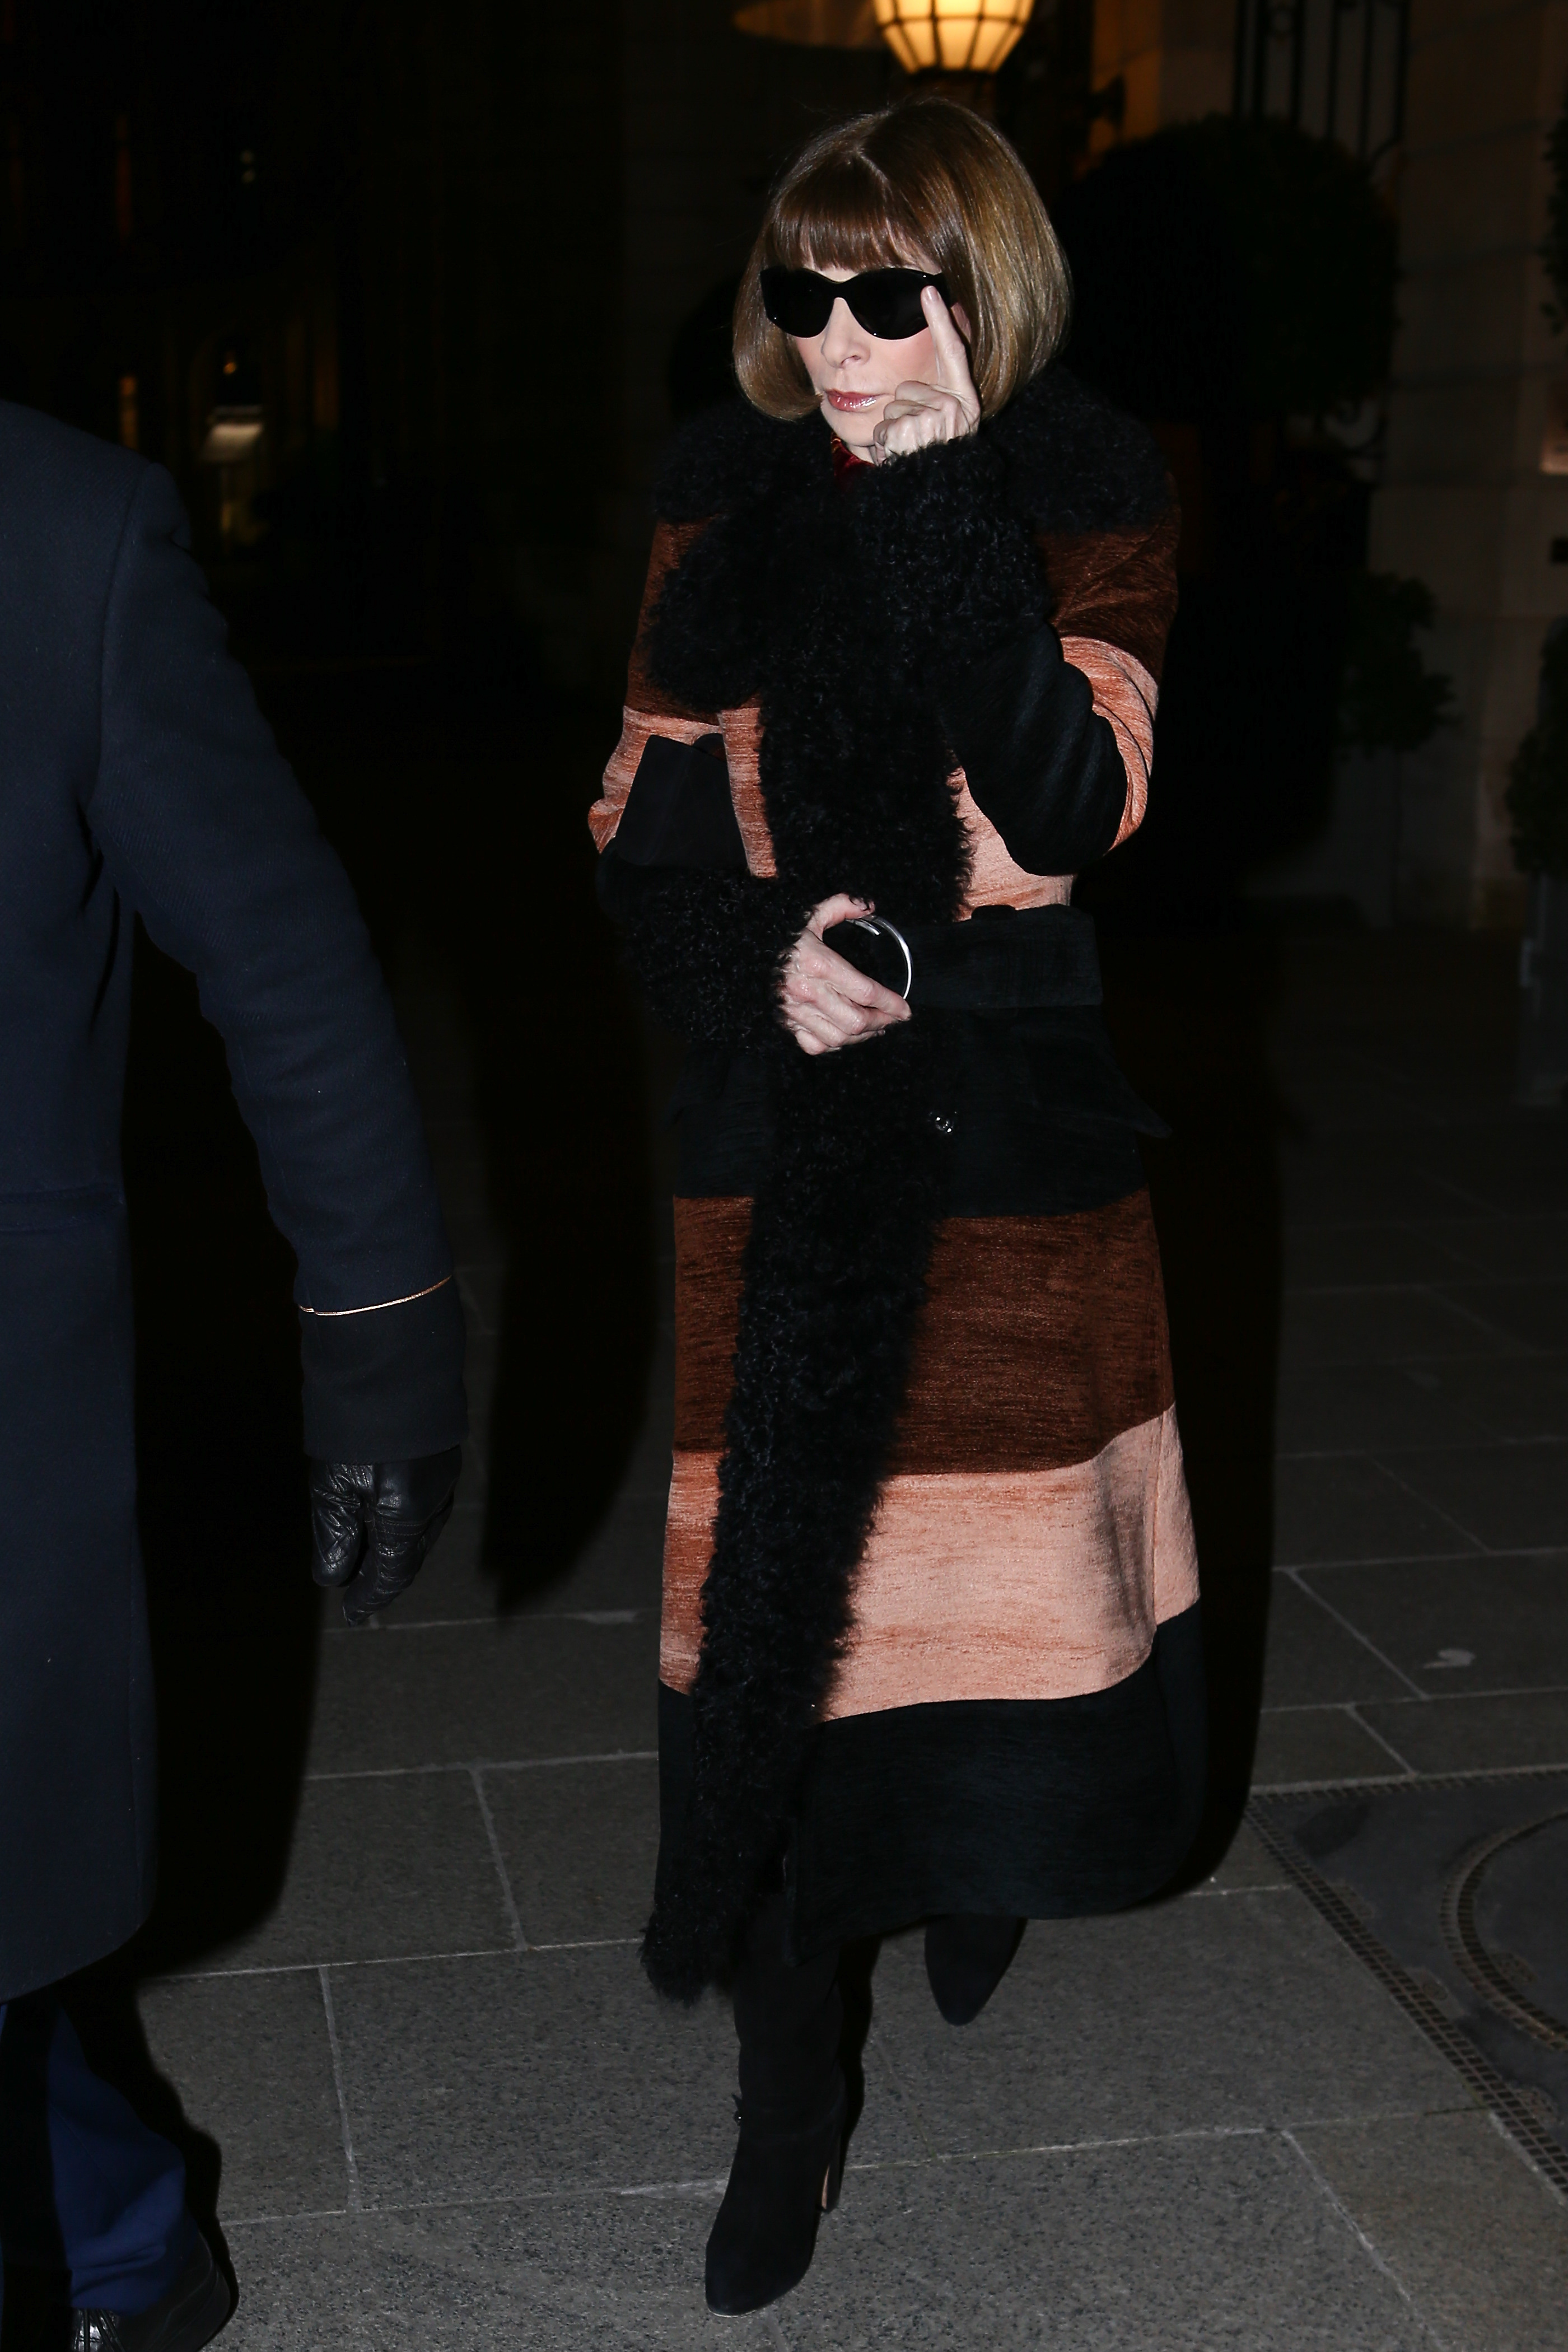 Anna Wintour leaving Ritz Hotel in Pari, FRANCE <P> Pictured: Anna Wintour <B>Ref: SPL1664961  270218  </B><BR/> Picture by: Splash News<BR/> </P><P> <B>Splash News and Pictures</B><BR/> Los Angeles:310-821-2666<BR/> New York:212-619-2666<BR/> London:870-934-2666<BR/> <span id=